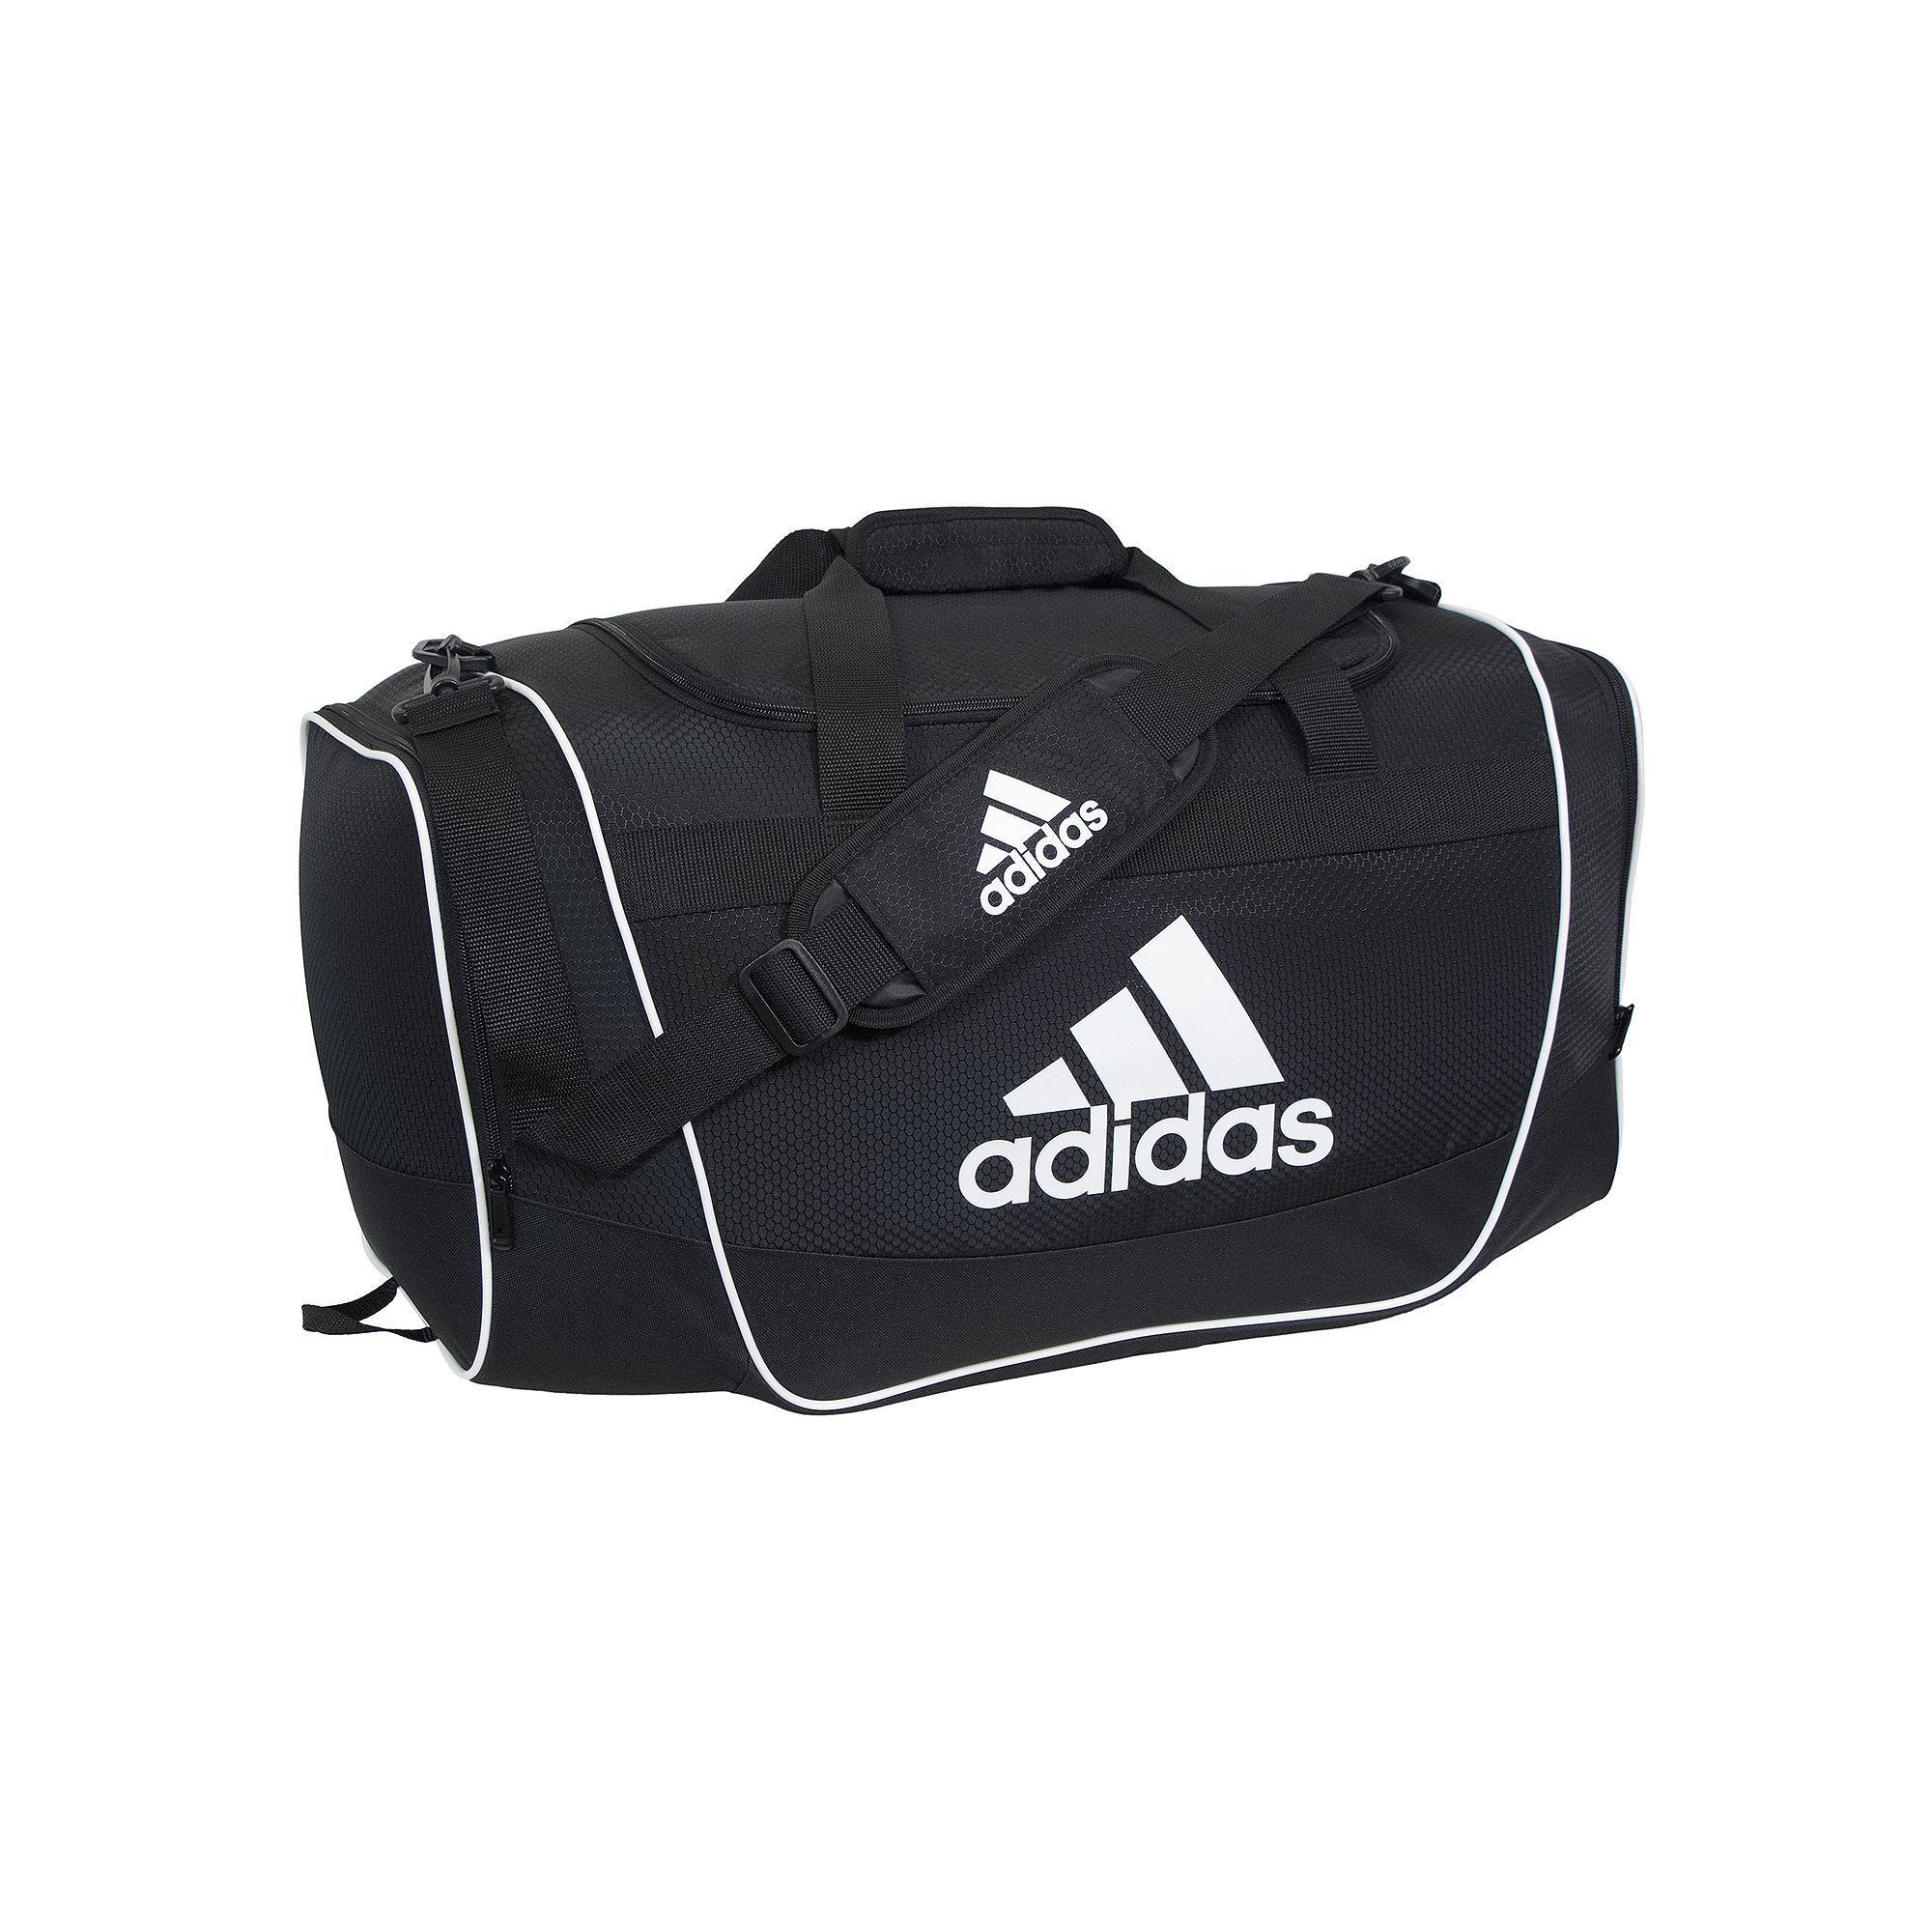 b33905457a adidas Defender II Duffel Bag - Large | Products | Duffel bag ...